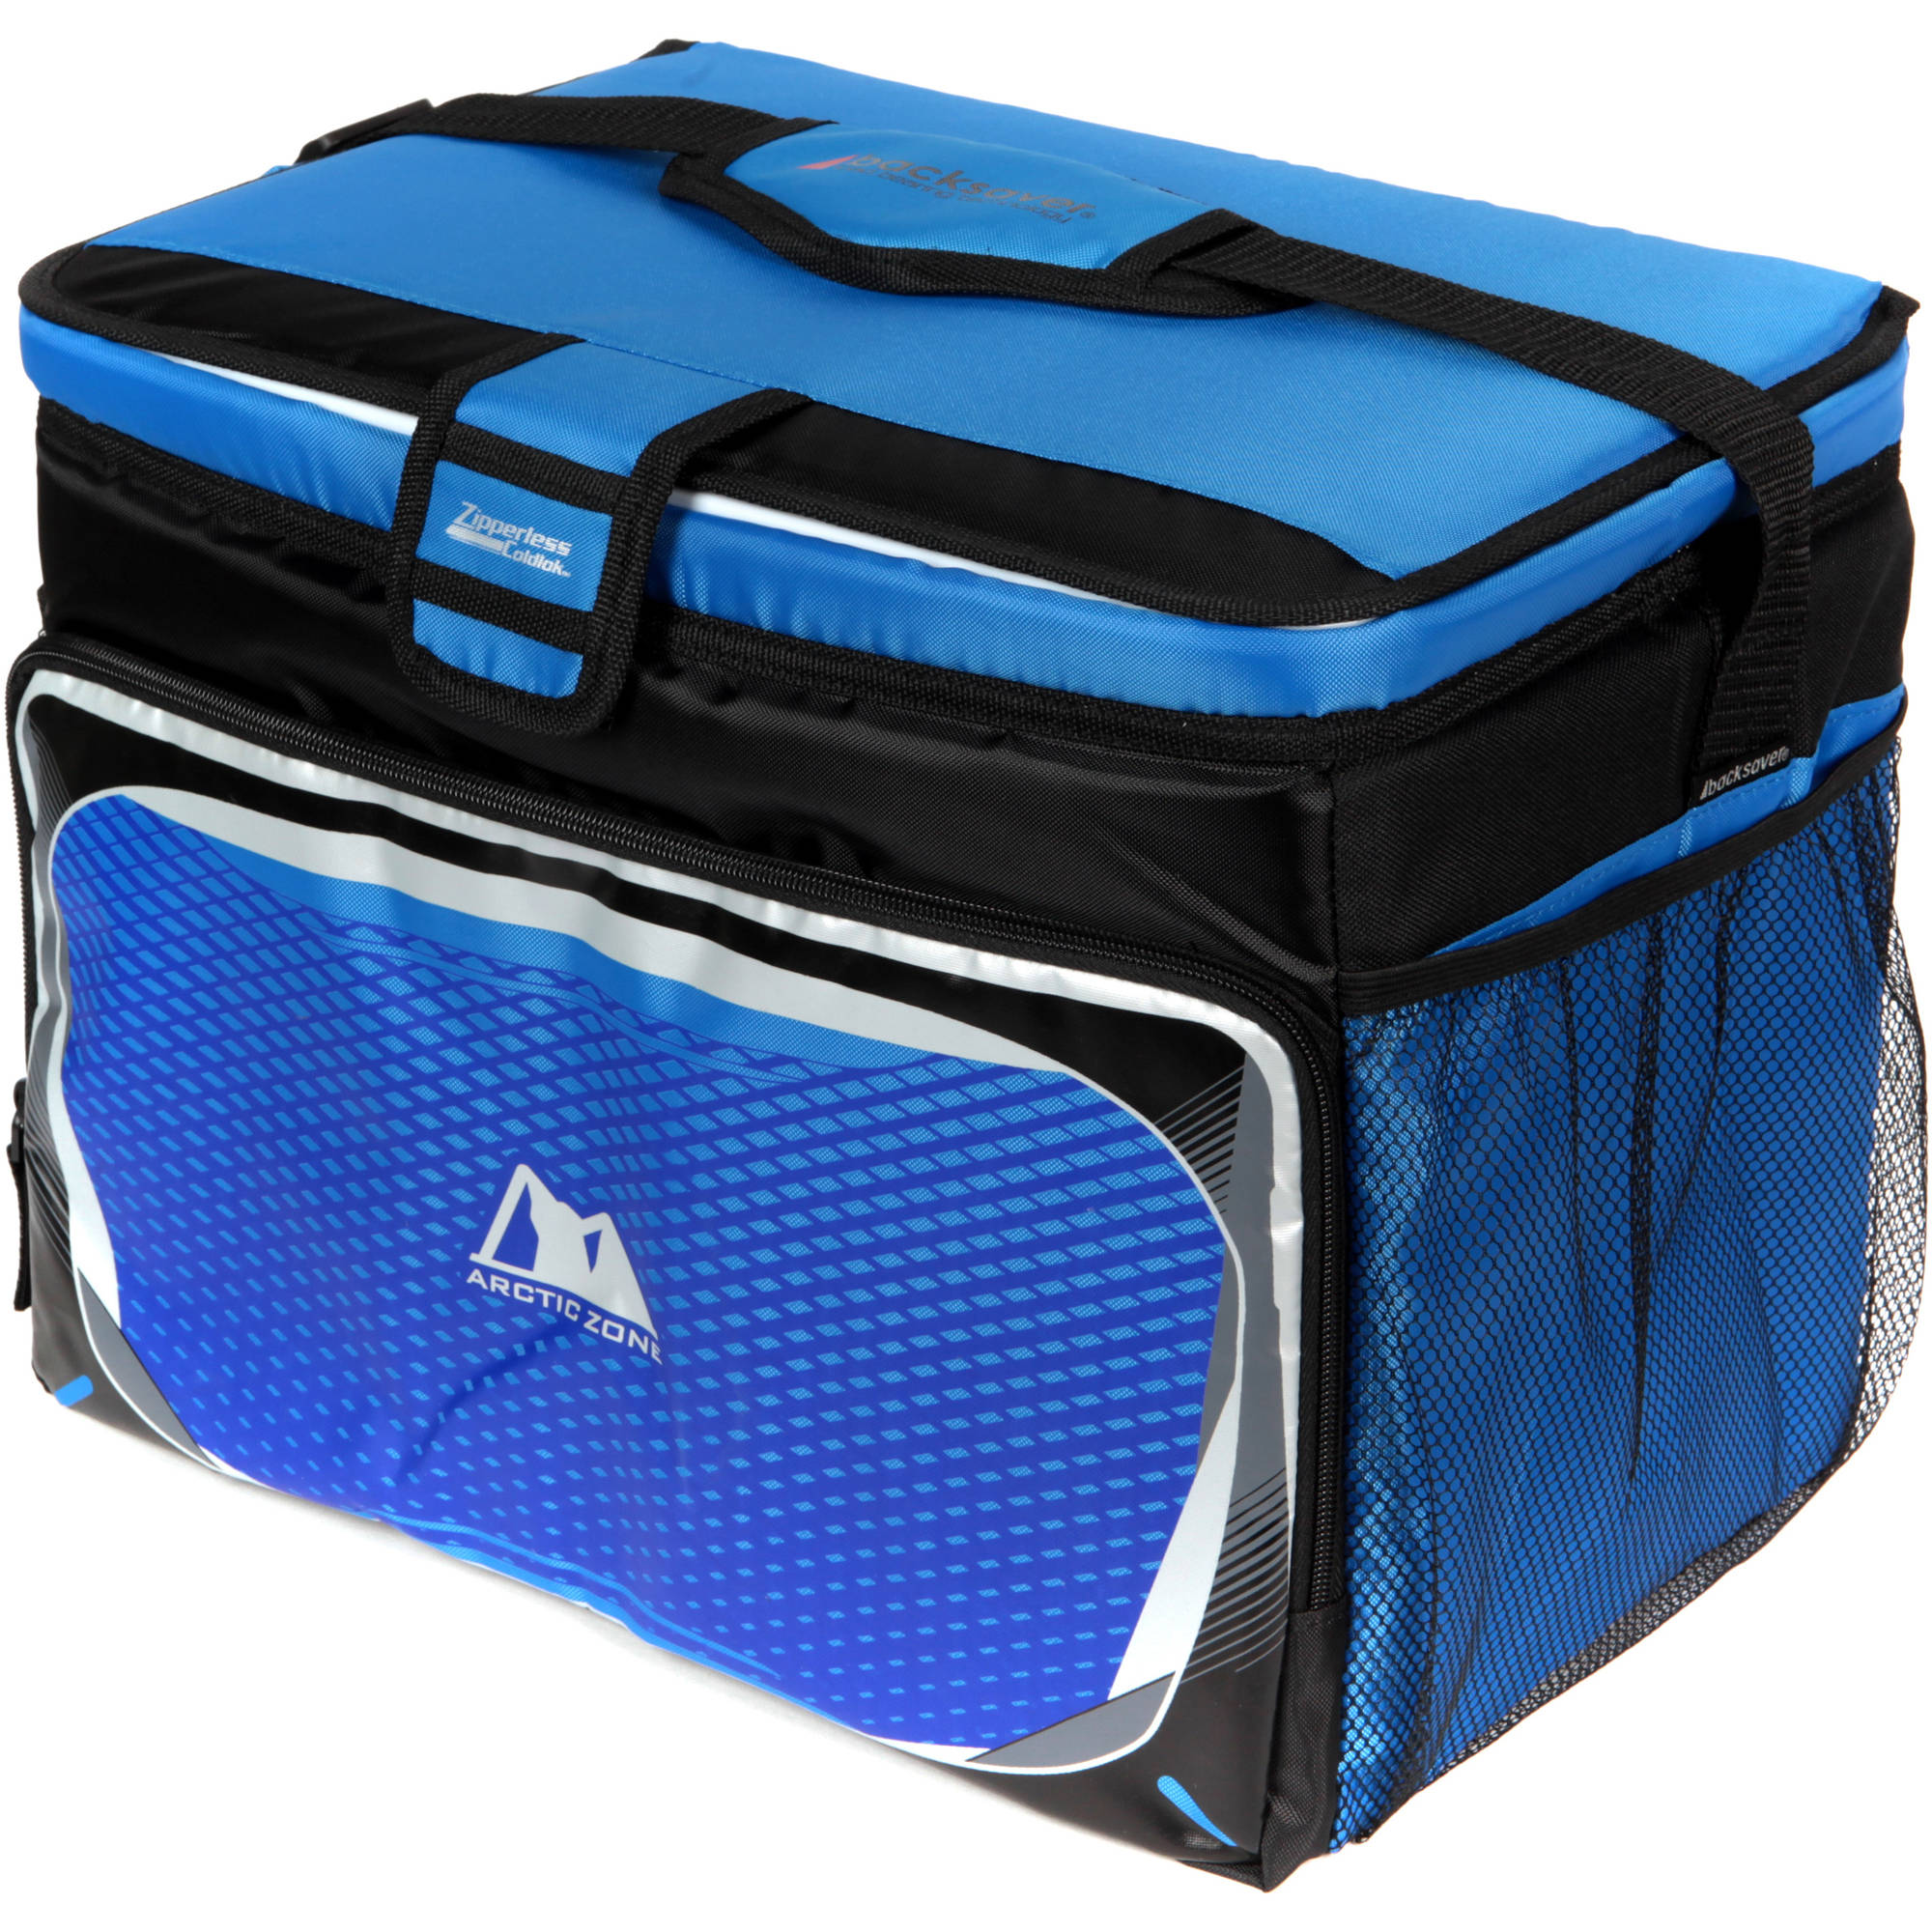 Arctic Zone 30-Can Zipperless Cooler